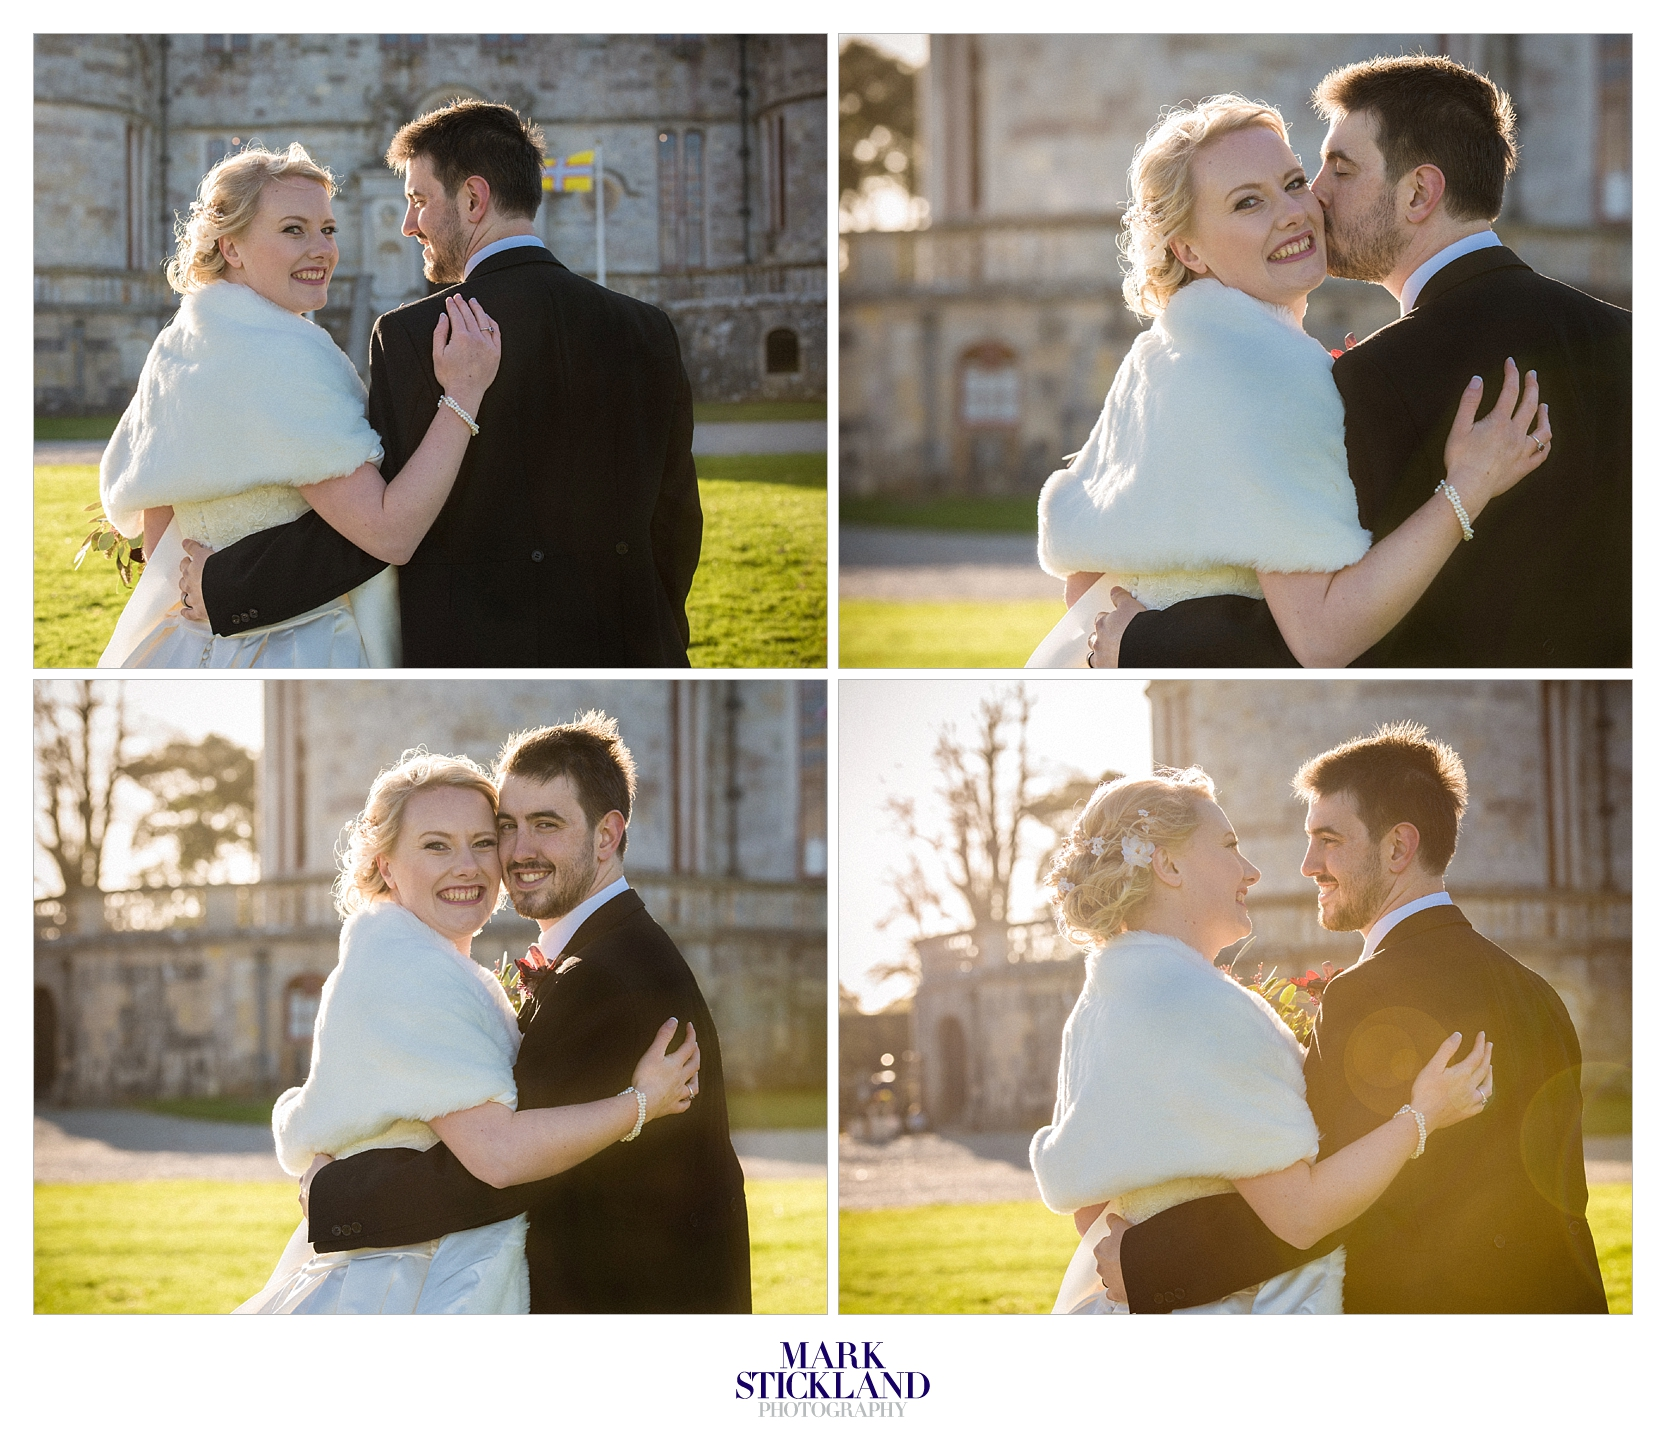 lulworth_castle_wedding_dorset_mark stickland photography.27